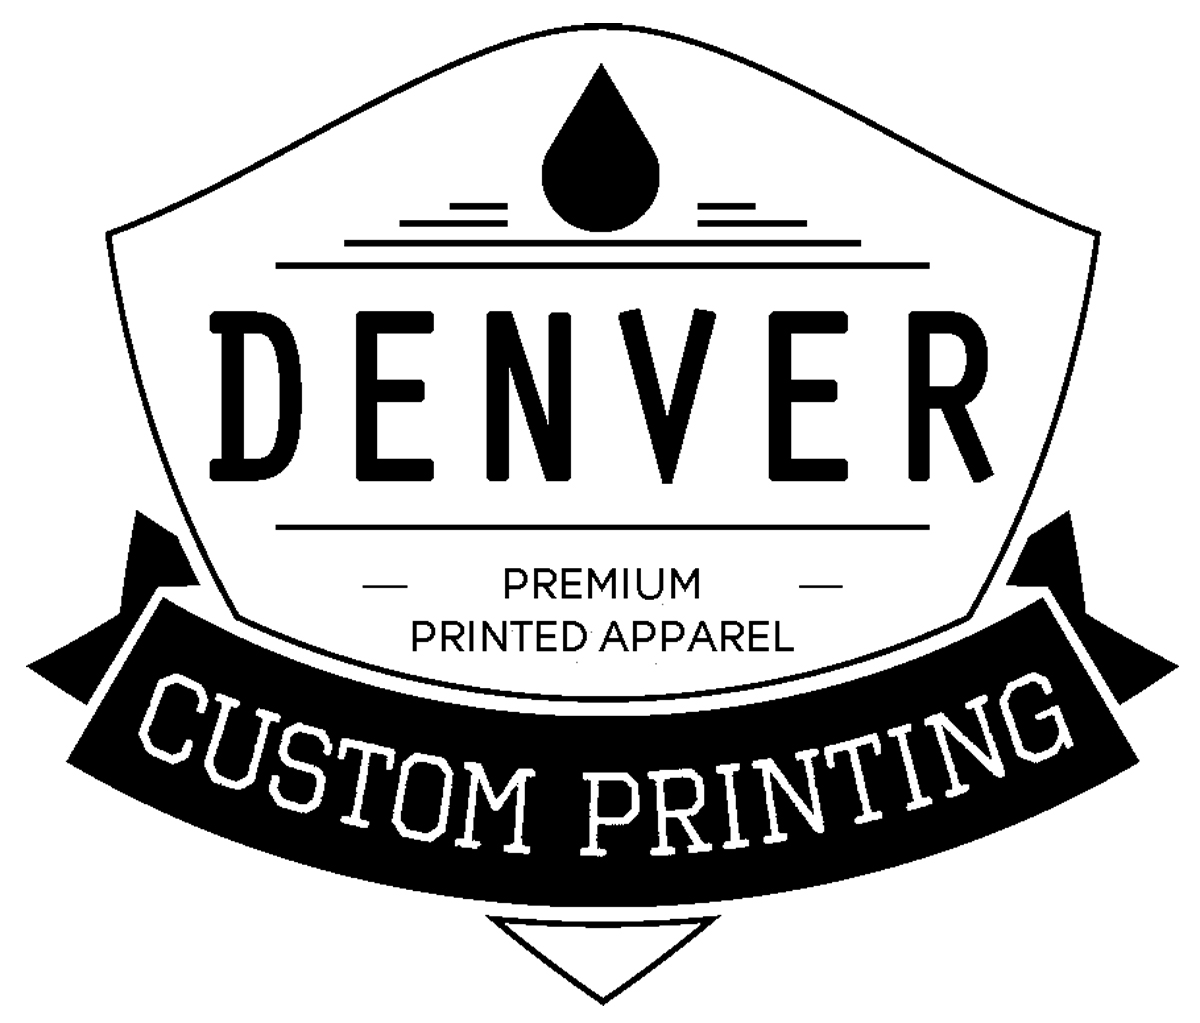 DENVER CUSTOM PRINTING, screen printing, direct to garment, custom printing, t-shirts, DTG, custom ink, t-shirt designer